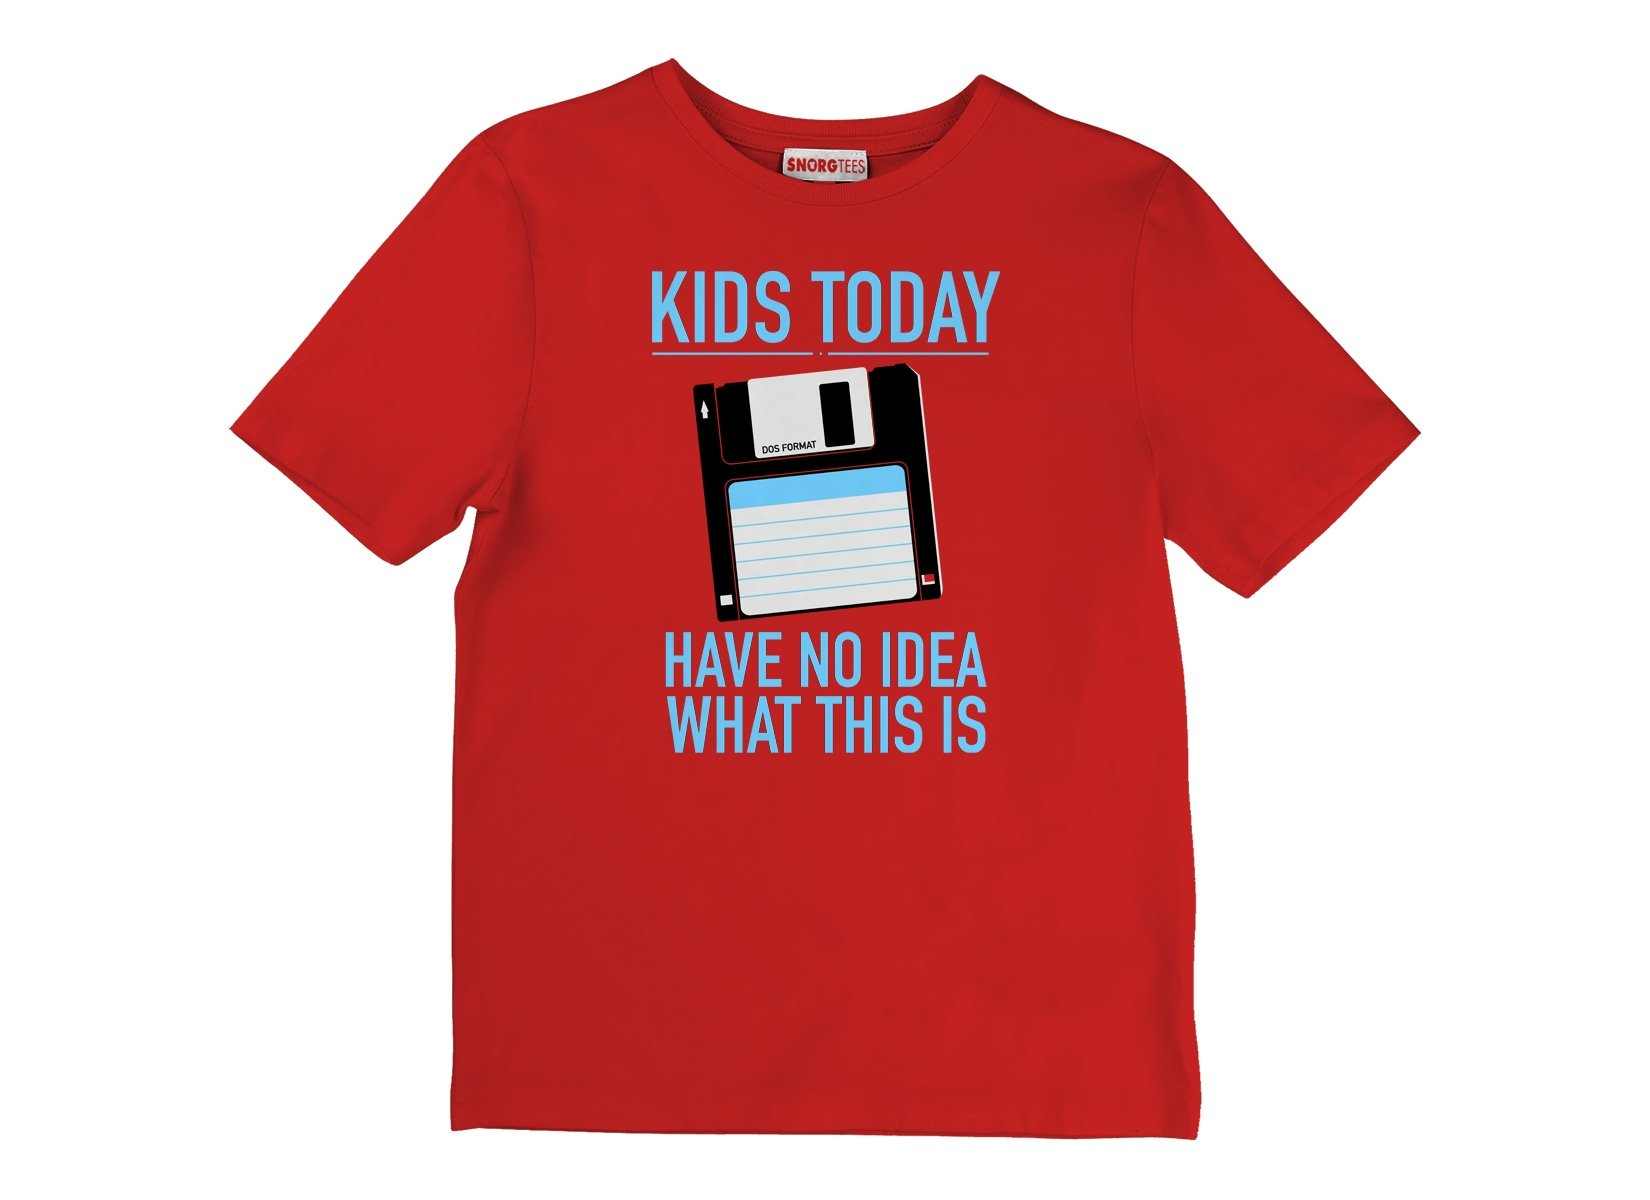 Kids Today Have No Idea What This Is on Kids T-Shirt